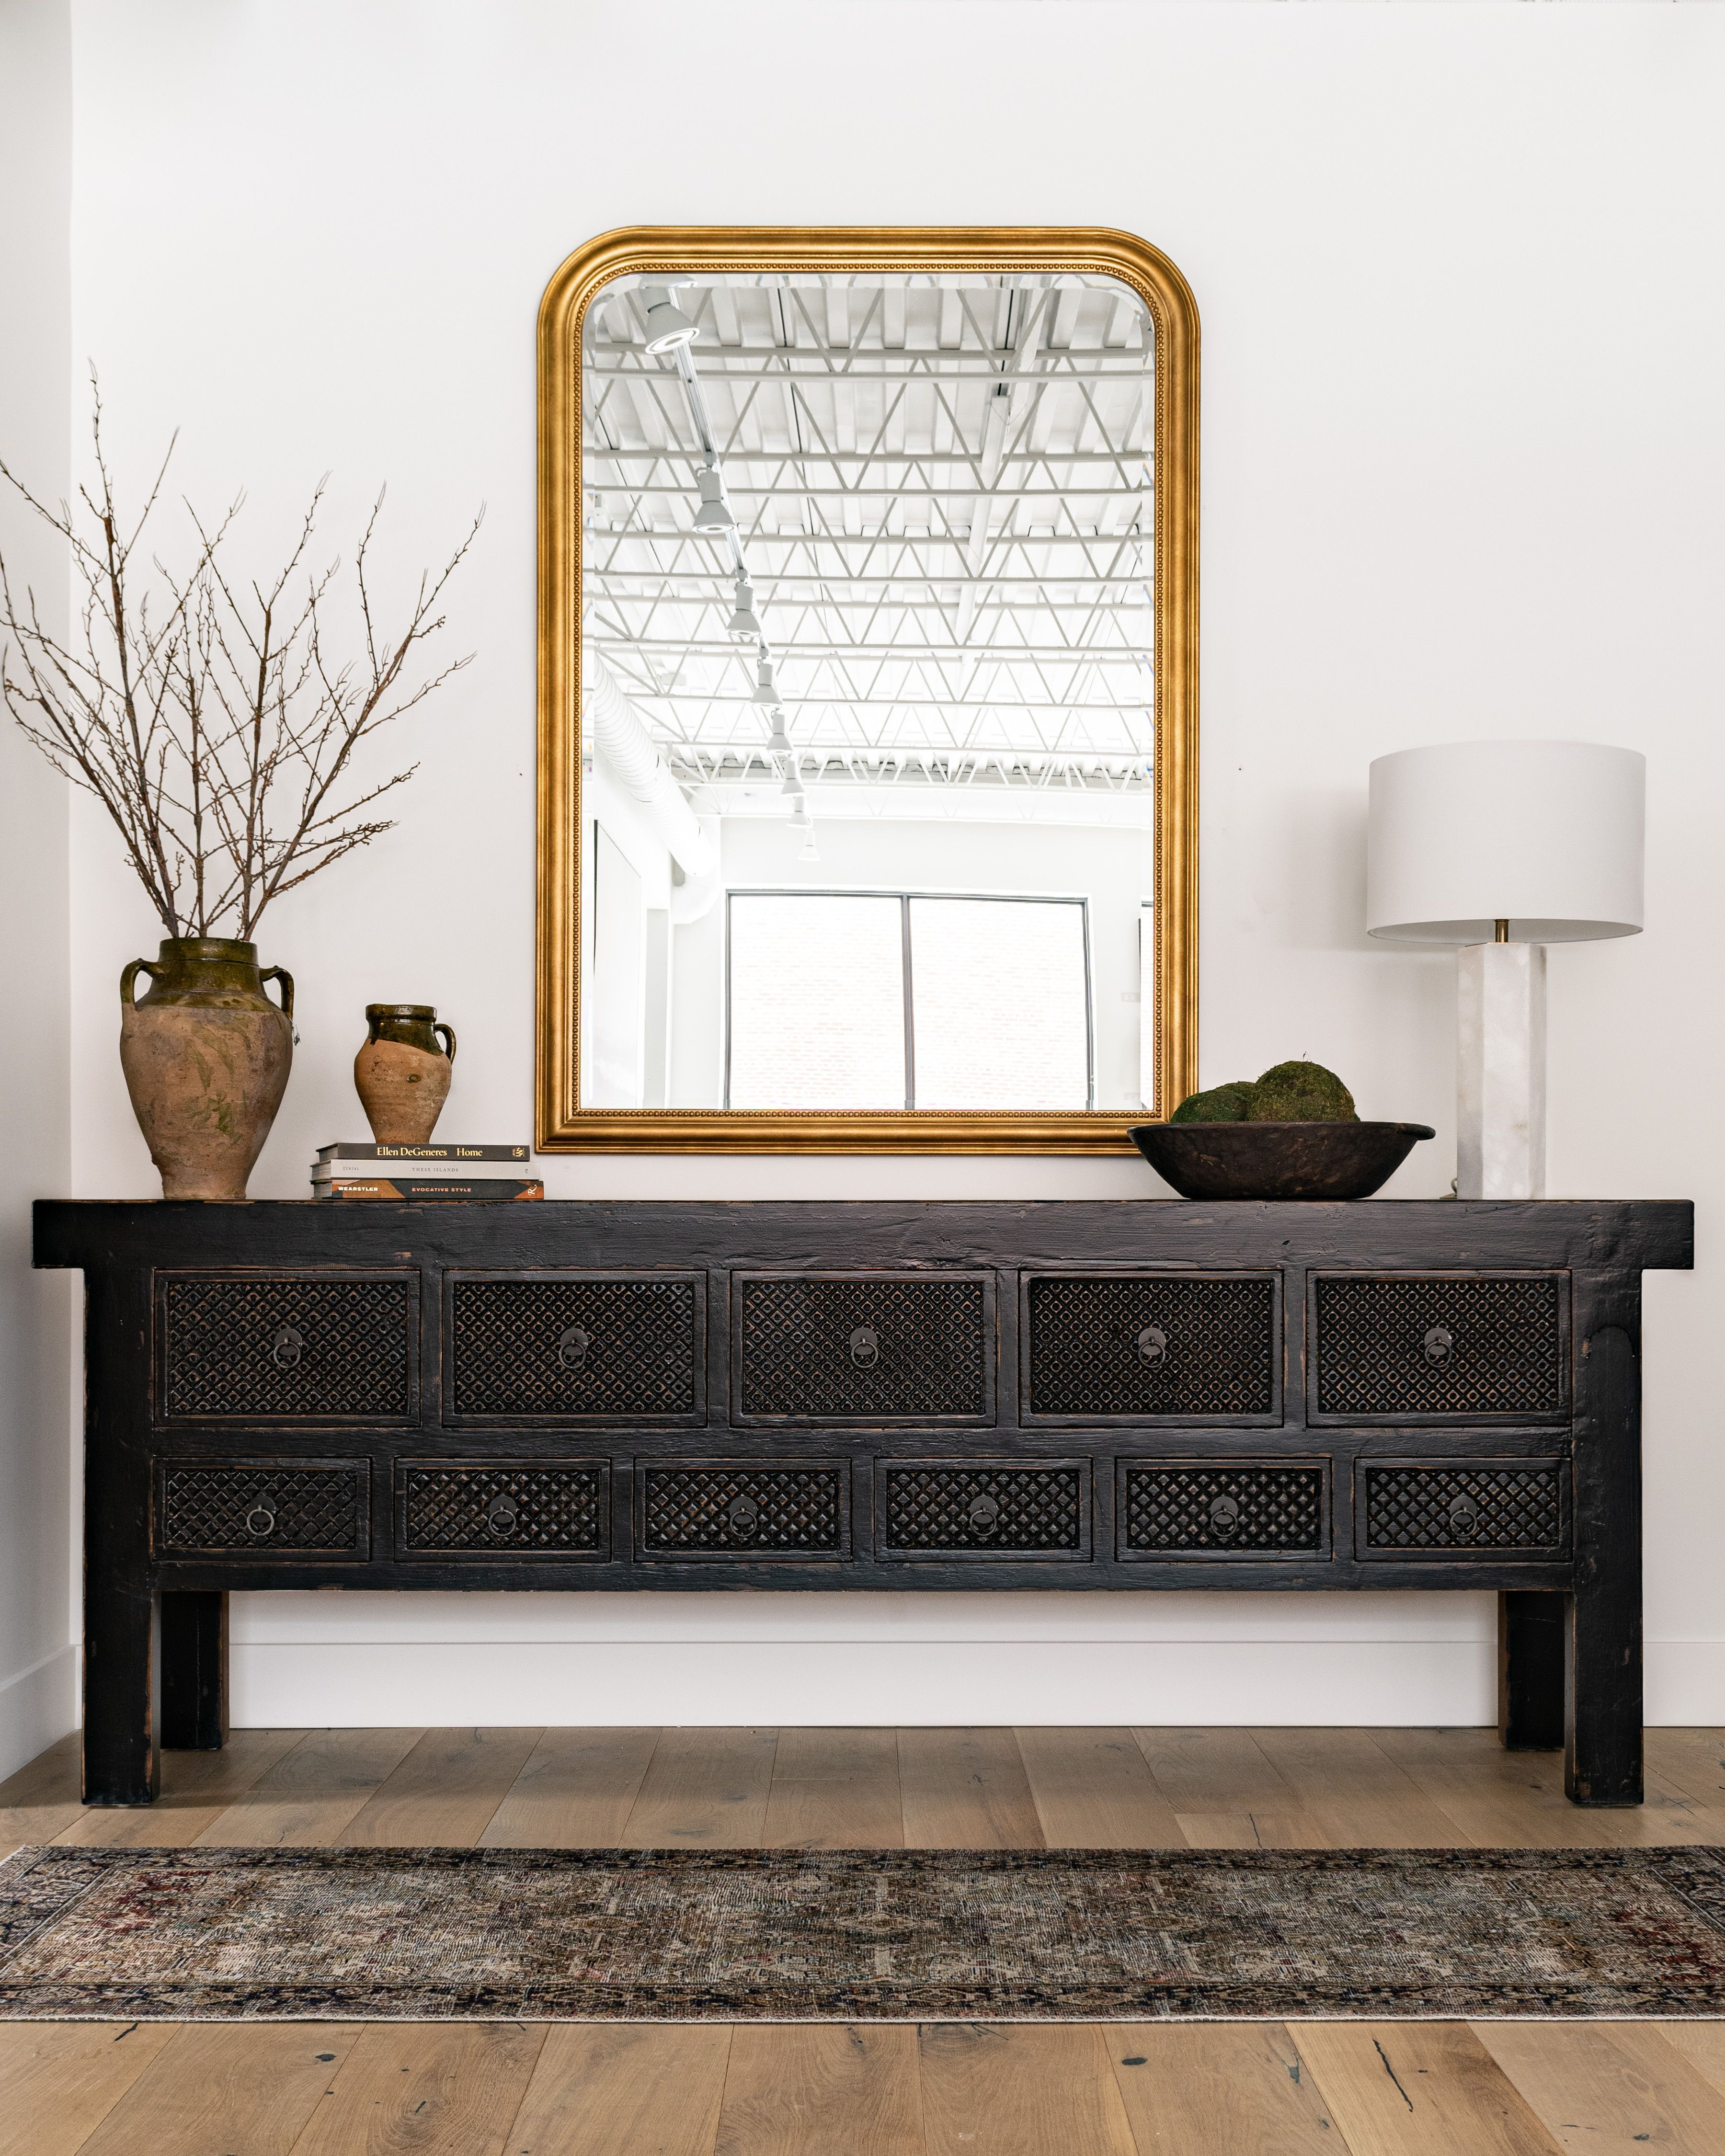 We Are Wrapping Up Our First Project Of 2020 And It Feels So Good We Haven T Shared Much Of Theoliverproject Yet In 2020 Entryway Inspiration Interior Home Decor